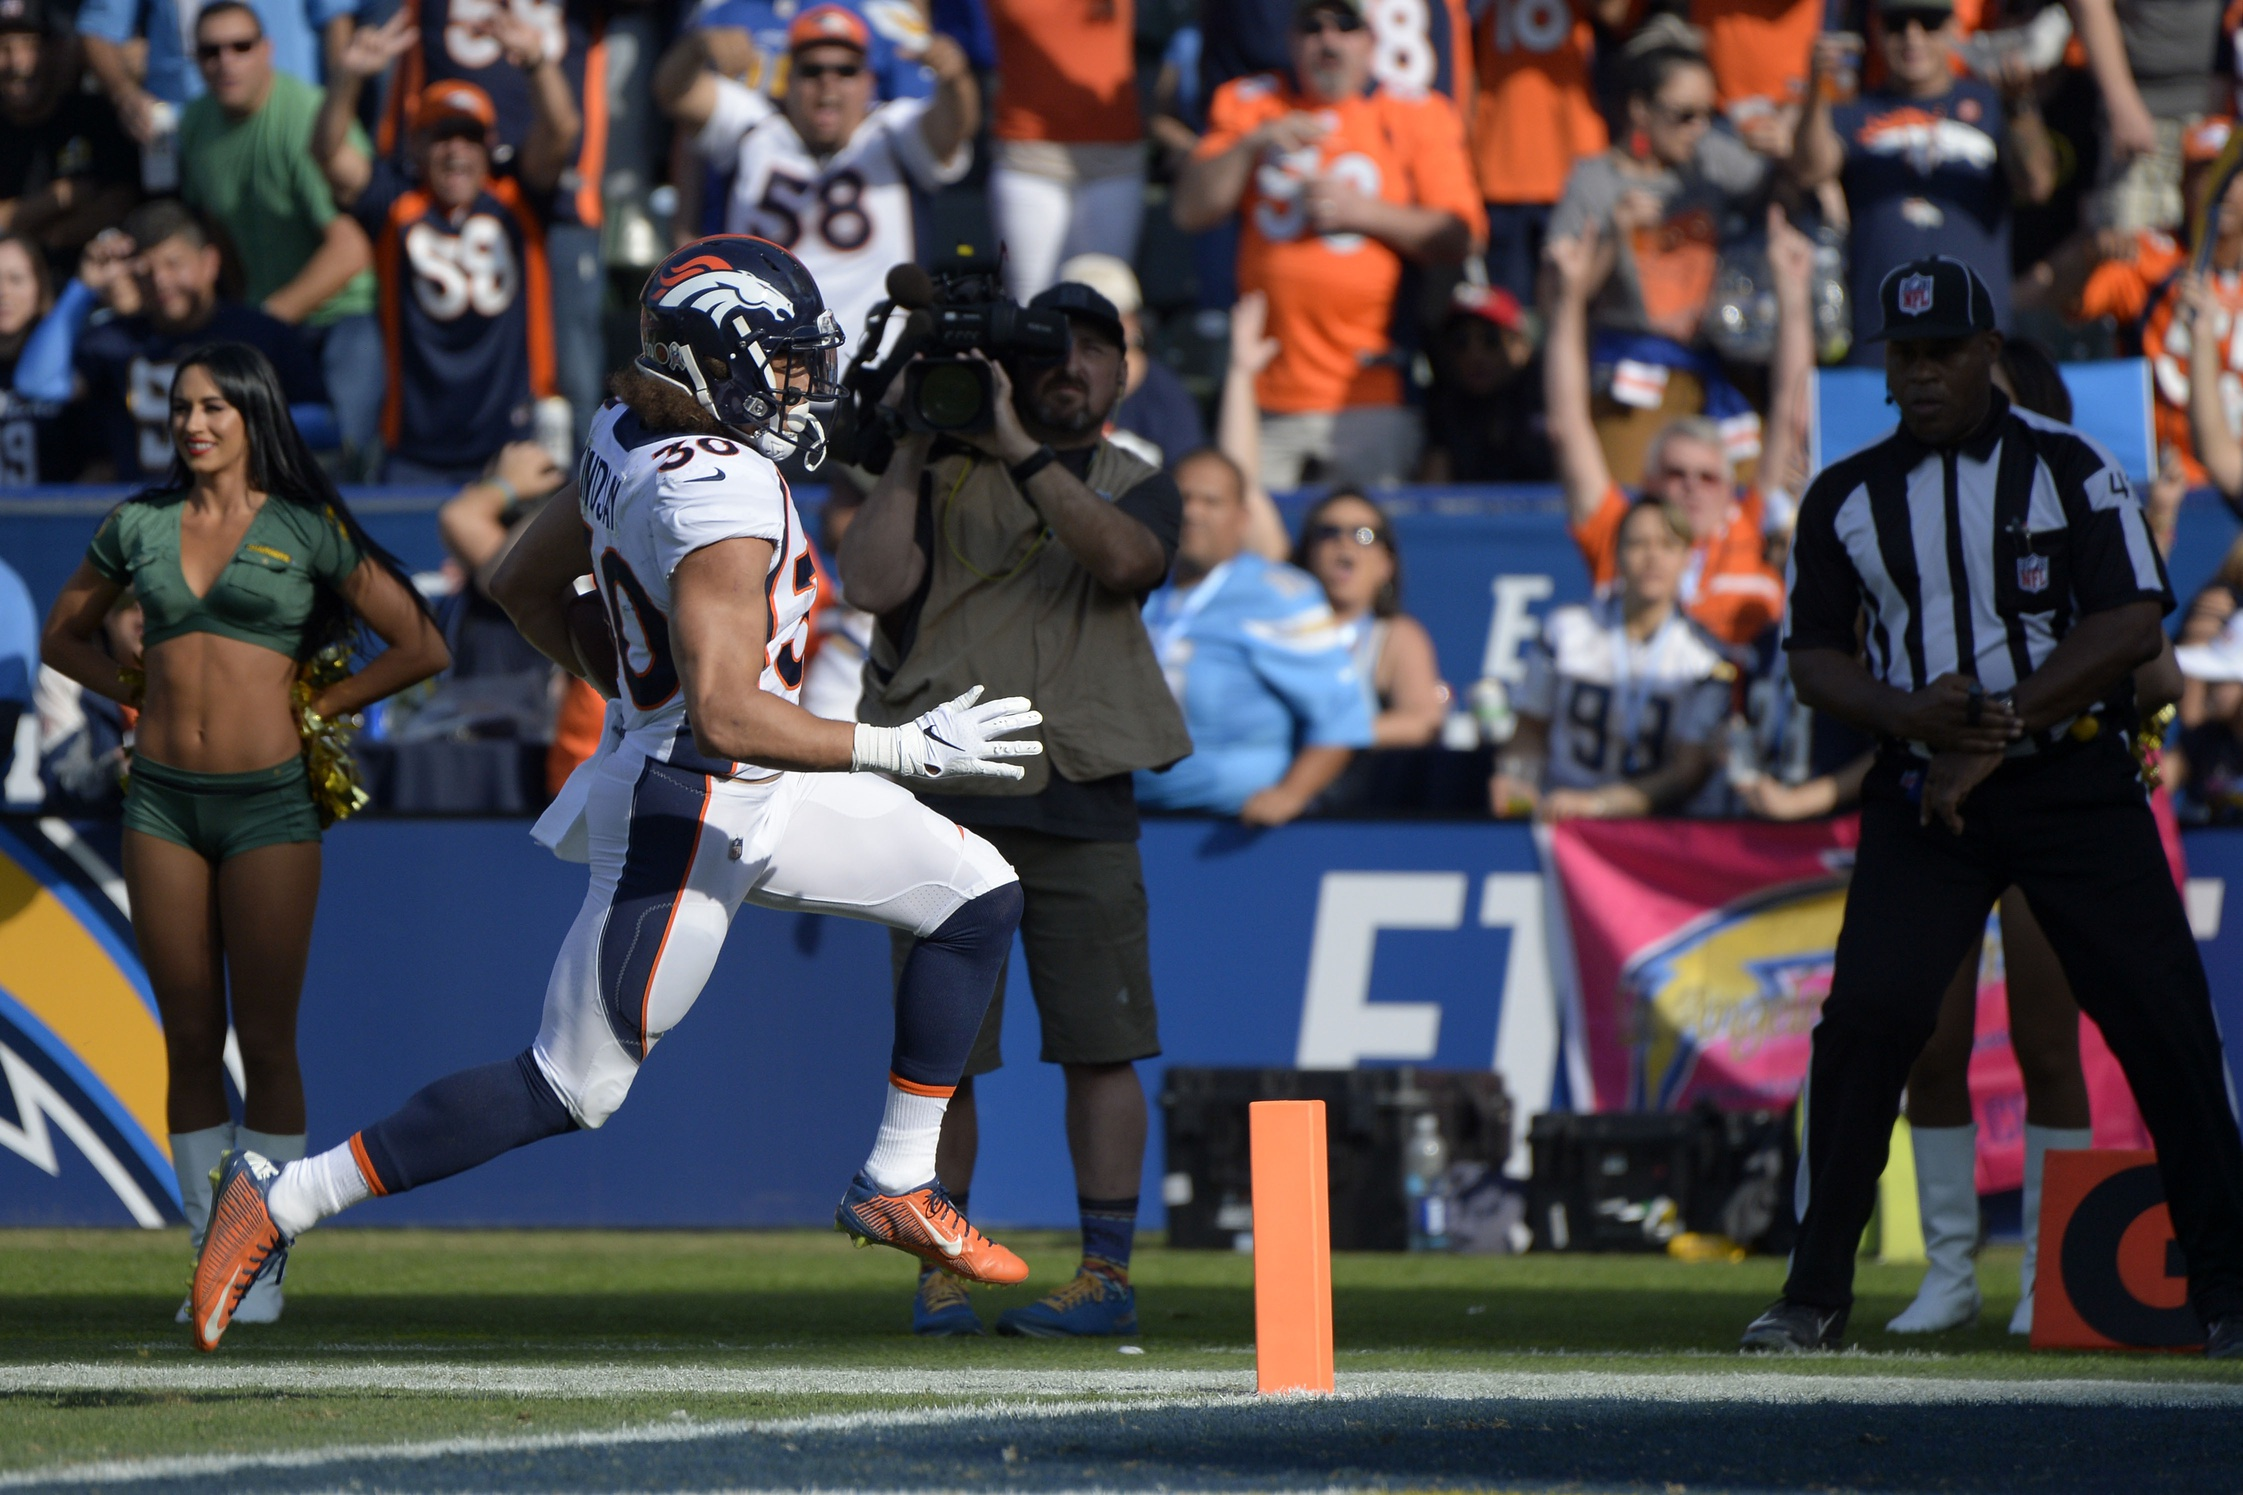 Watch: Broncos take down Chargers on last-second field goal